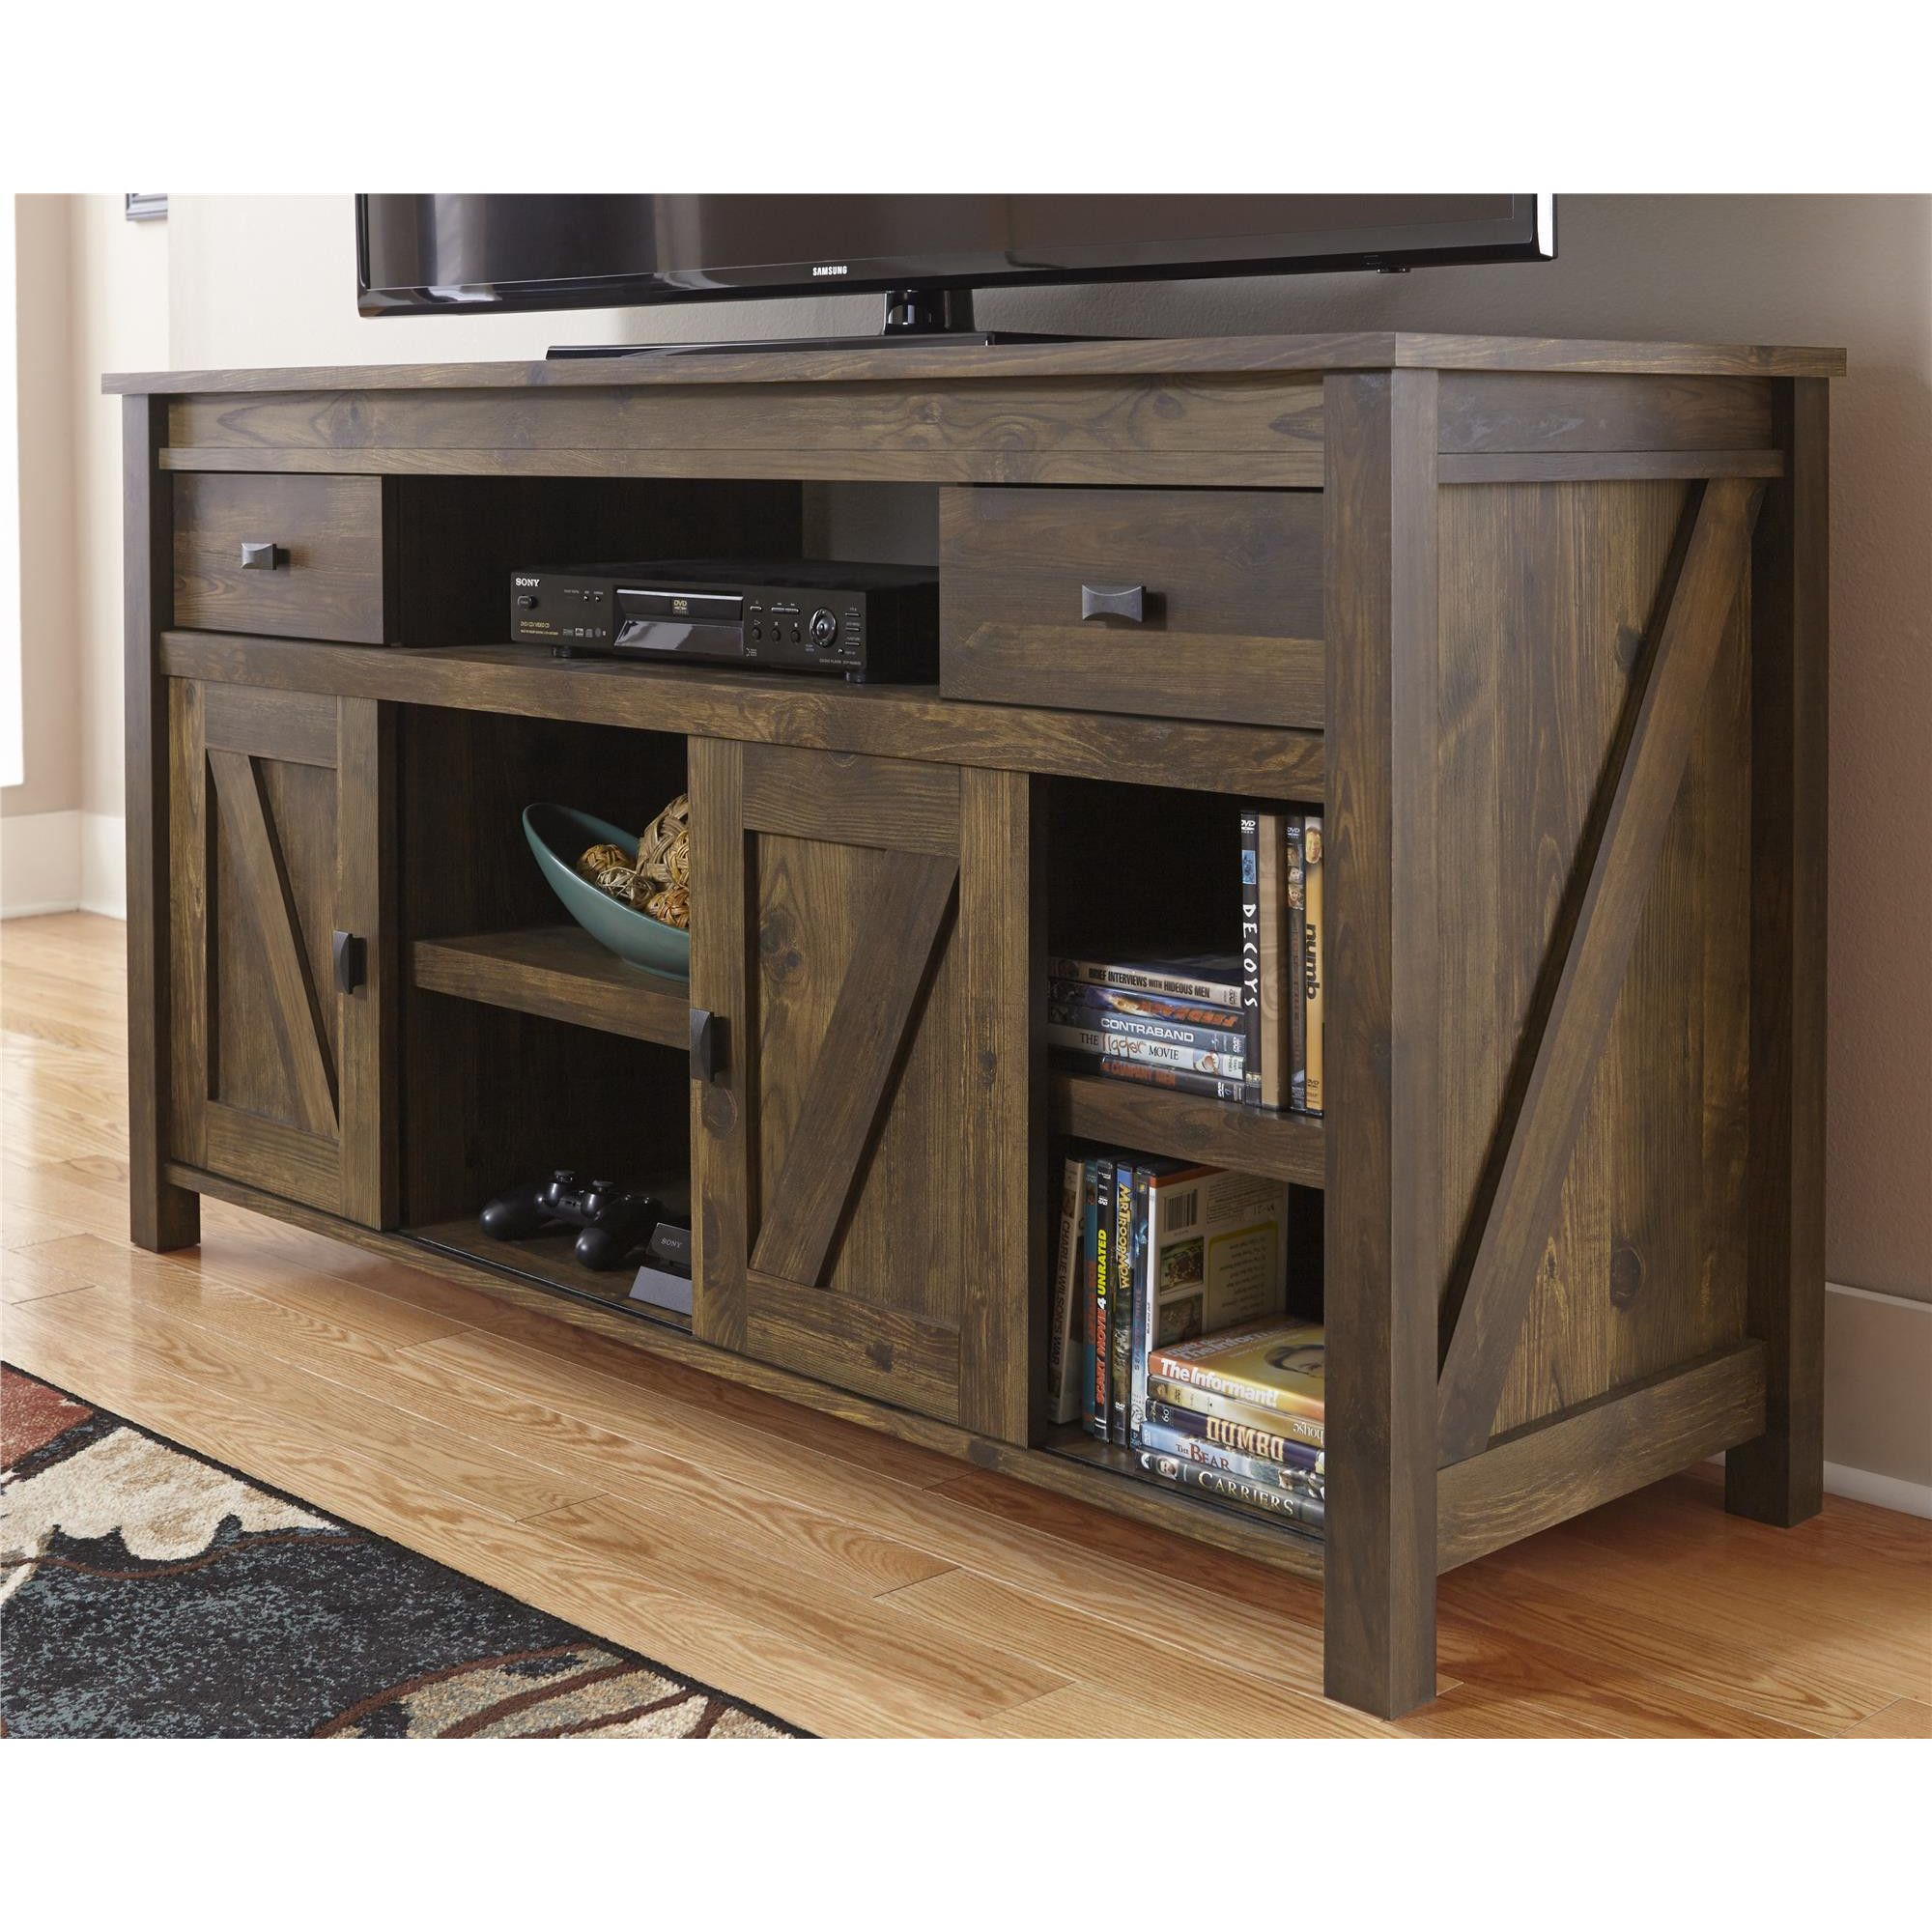 19 Amazing Diy TV Stand Ideas You can Build Right Now